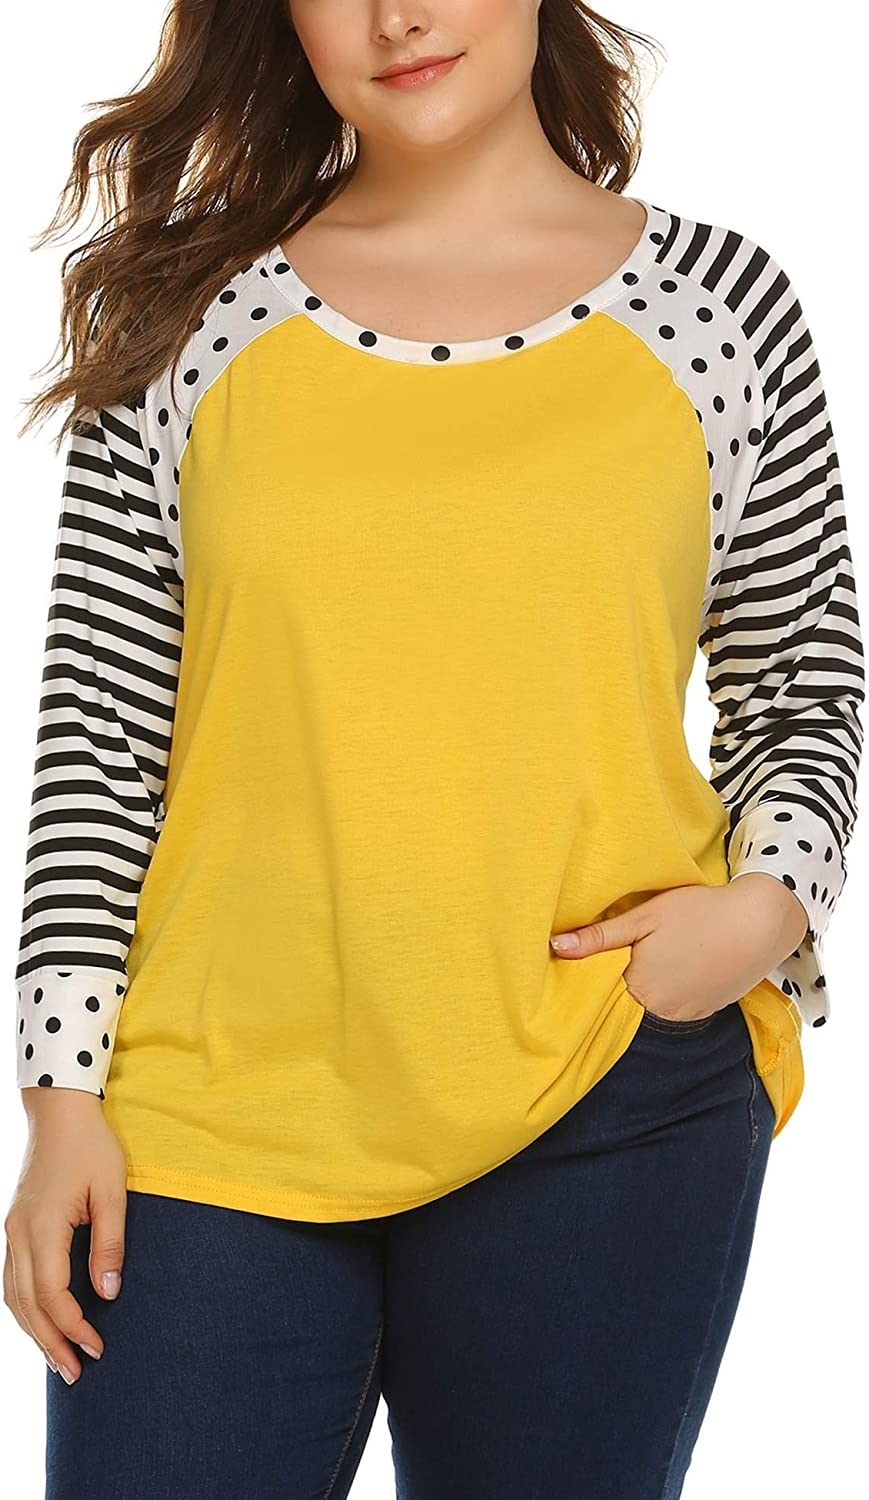 IN'VOLAND Women's Plus Size Raglan Top Striped Baseball T-Shirt 3/4 Sleeve Casual Scoop Neck Tee Tunic